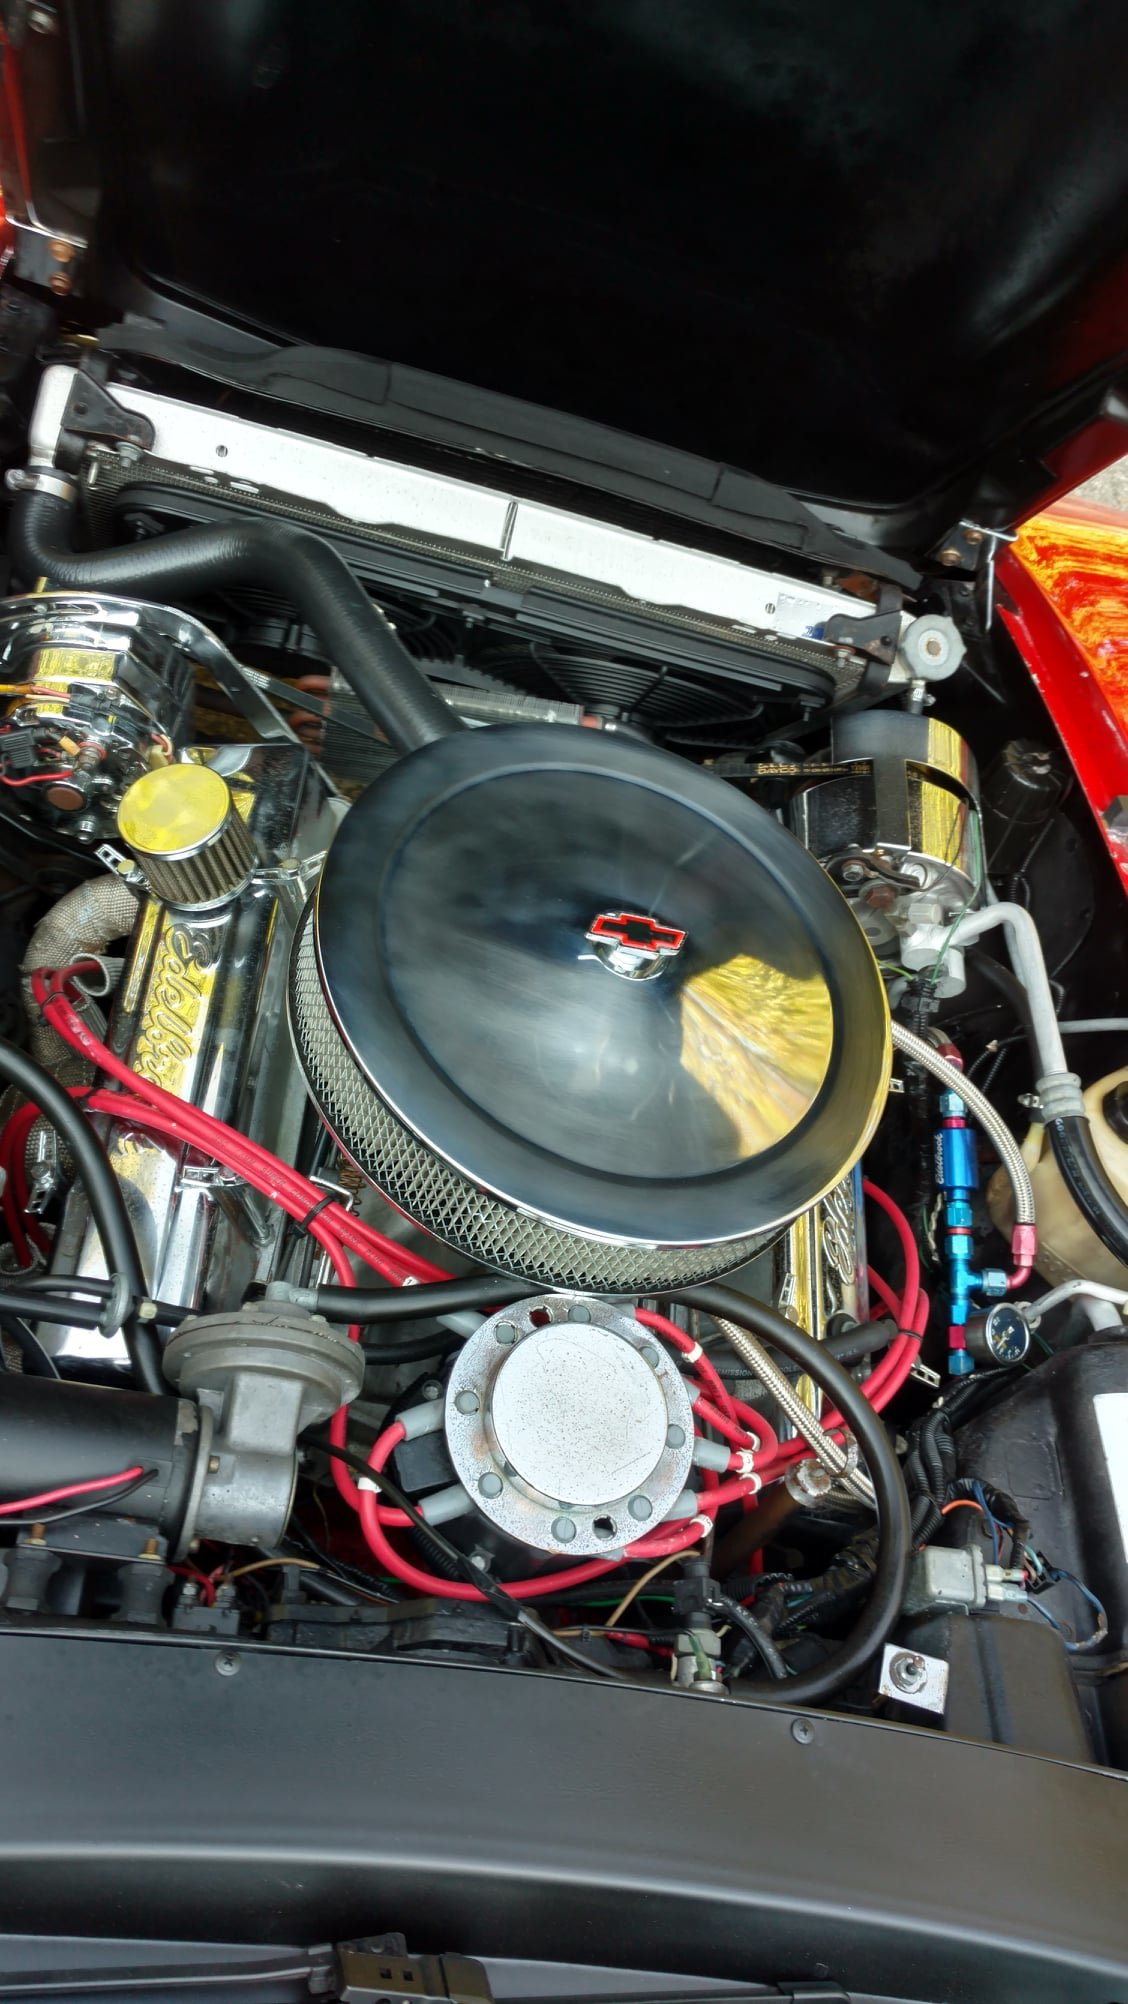 1969 Chevrolet Camaro SS (West Palm Beach, Florida) For Sale (picture 3 of 6)